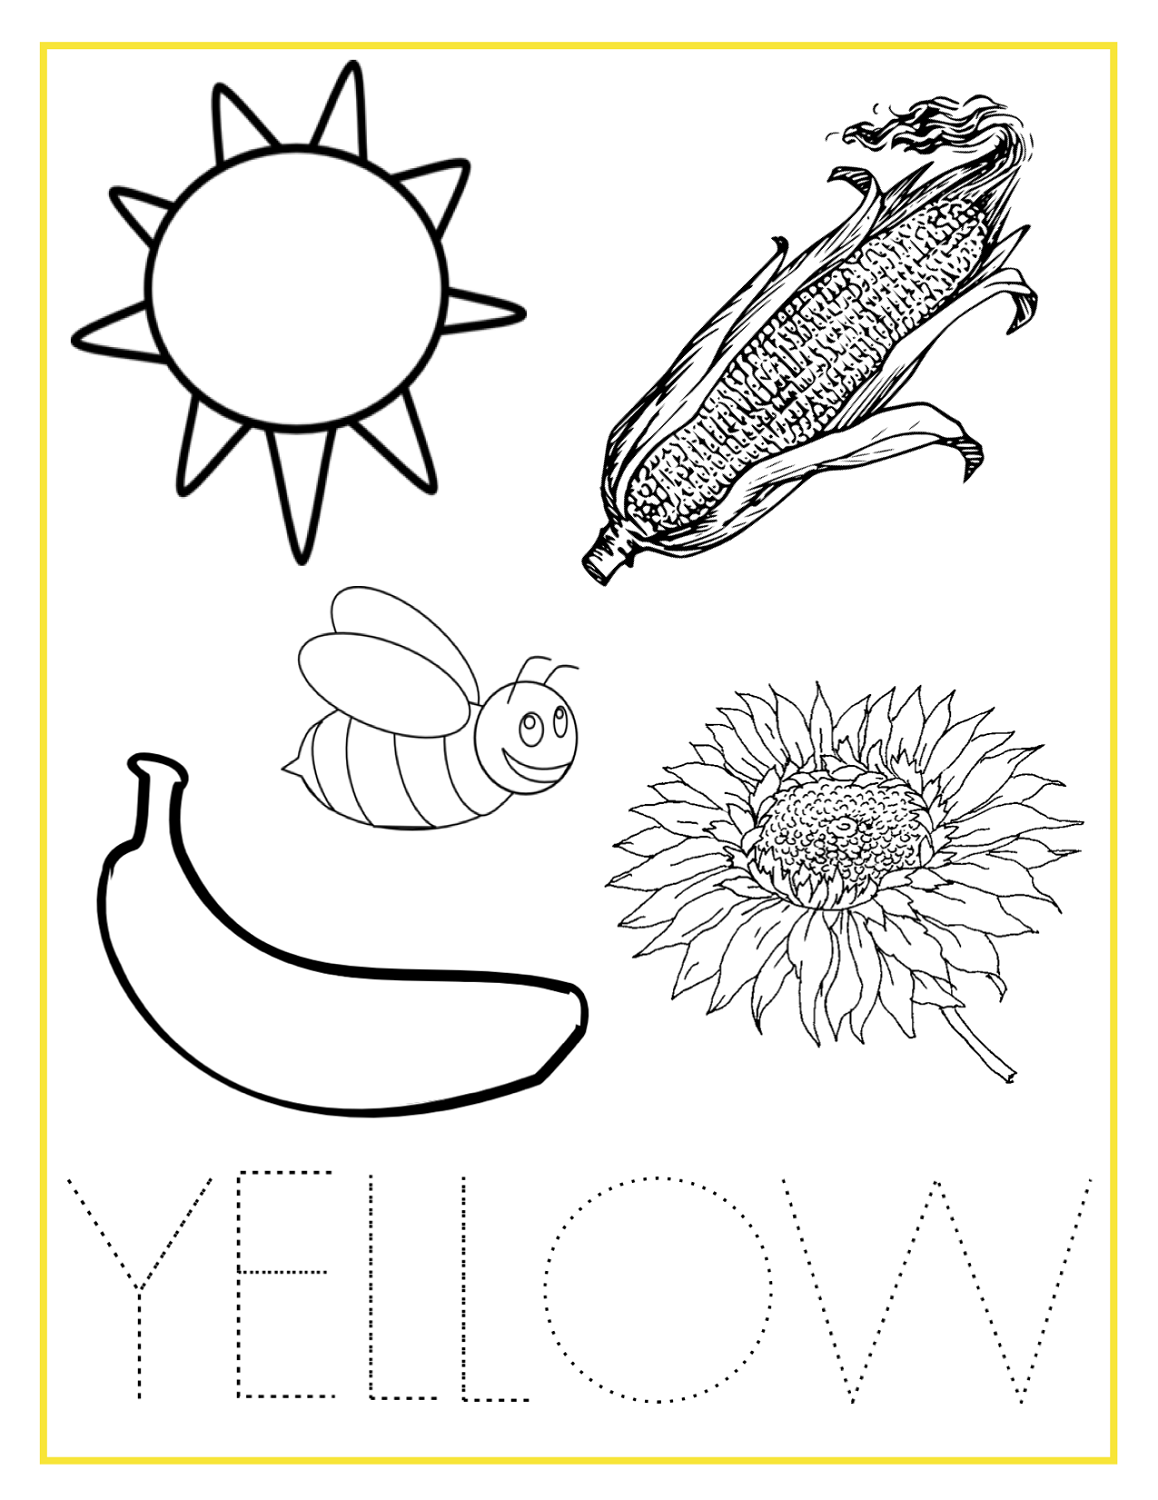 coloring learning activities for preschoolers printables